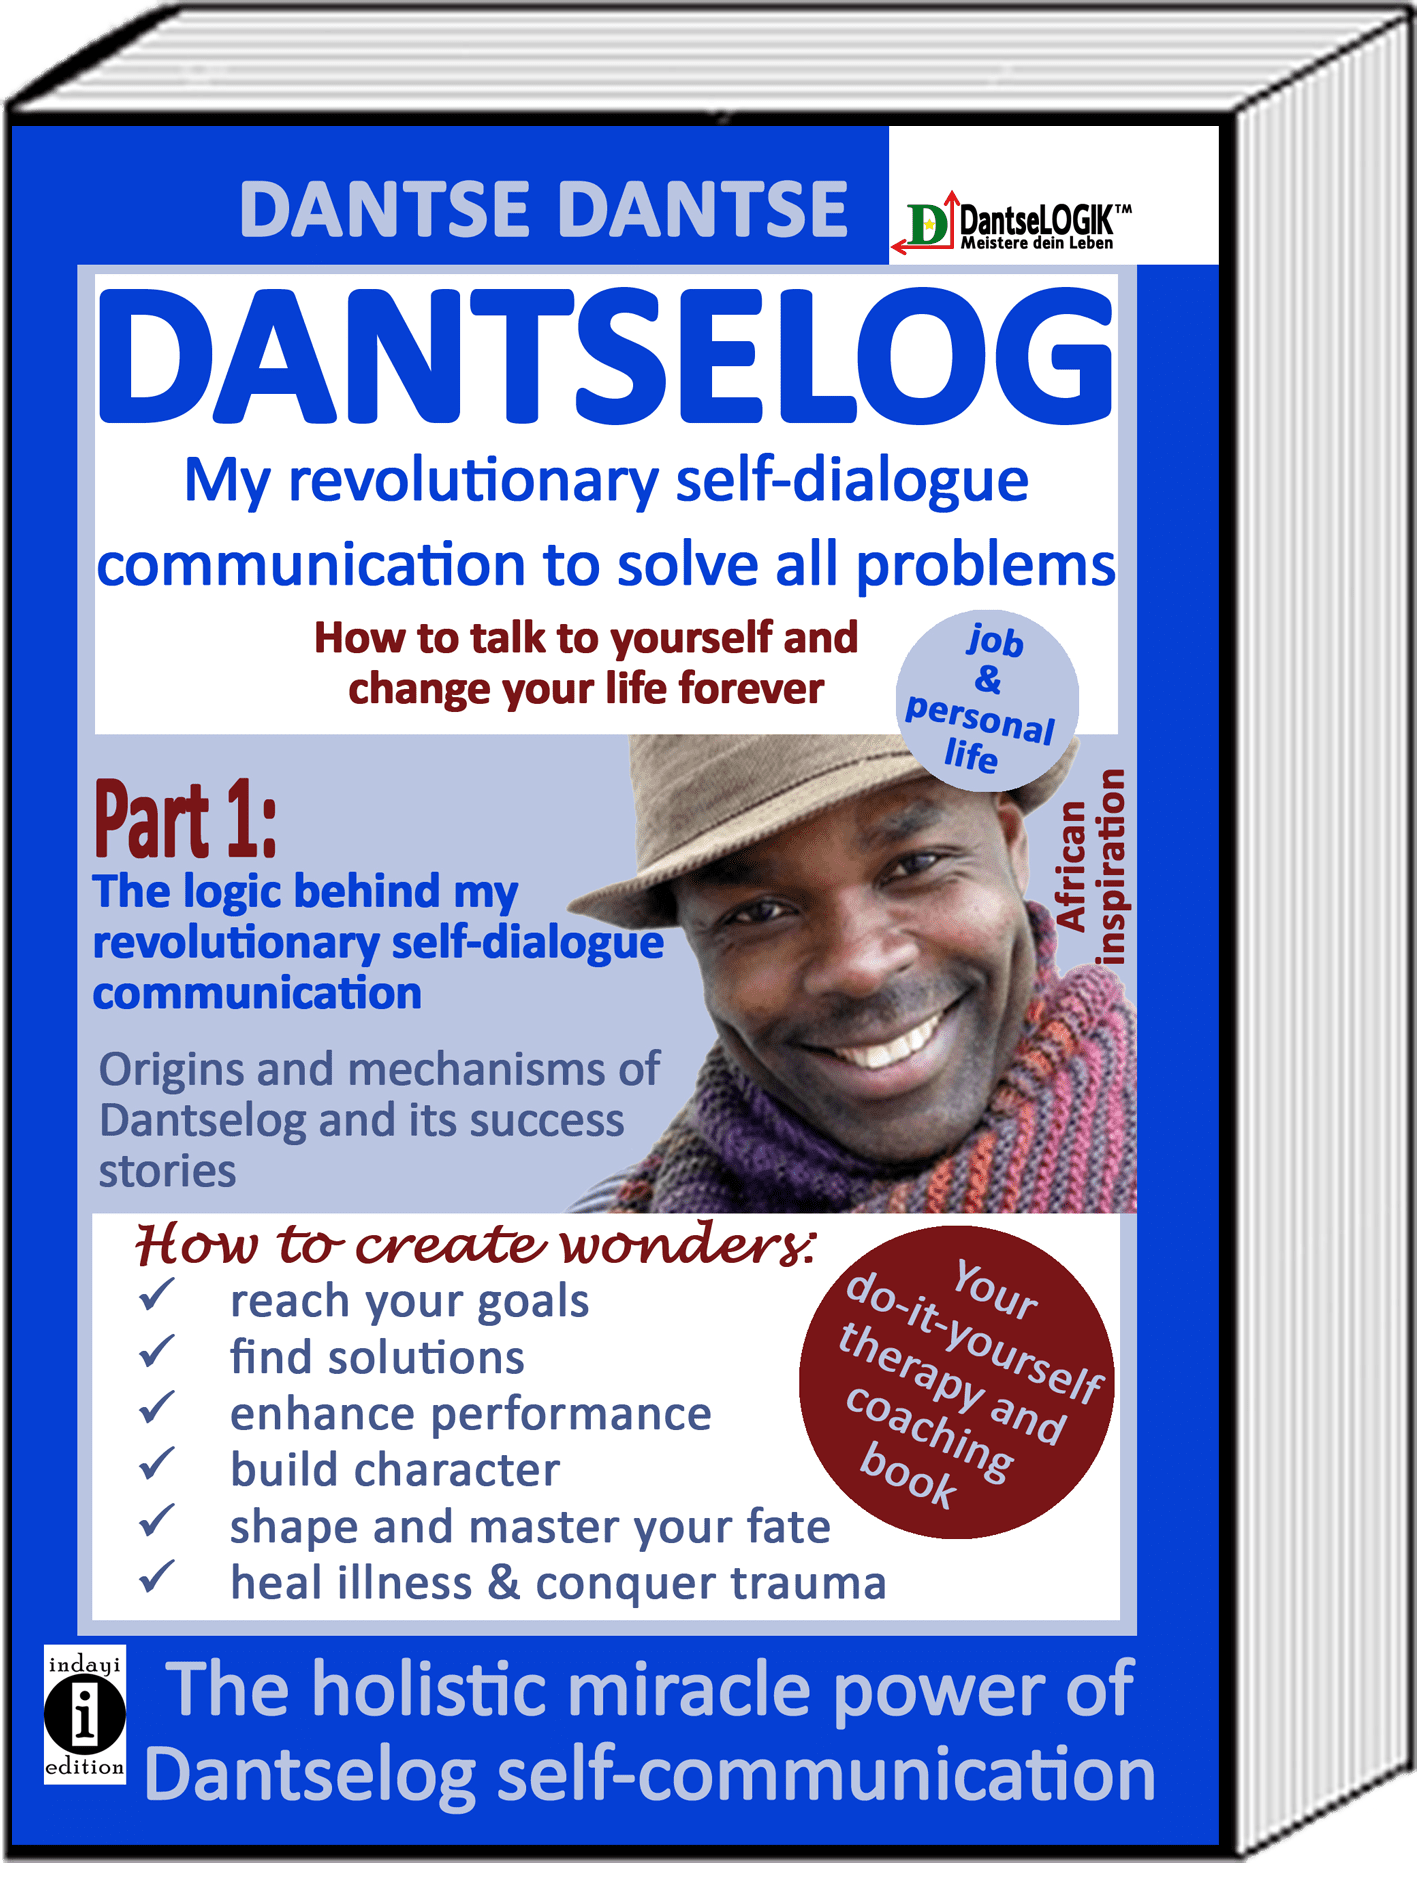 DANTSELOG - My revolutionary self-dialogue communication to solve all problems - How to talk to yourself and change your life forever. Part 1: The logic behind my revolutionary self-dialogue communication